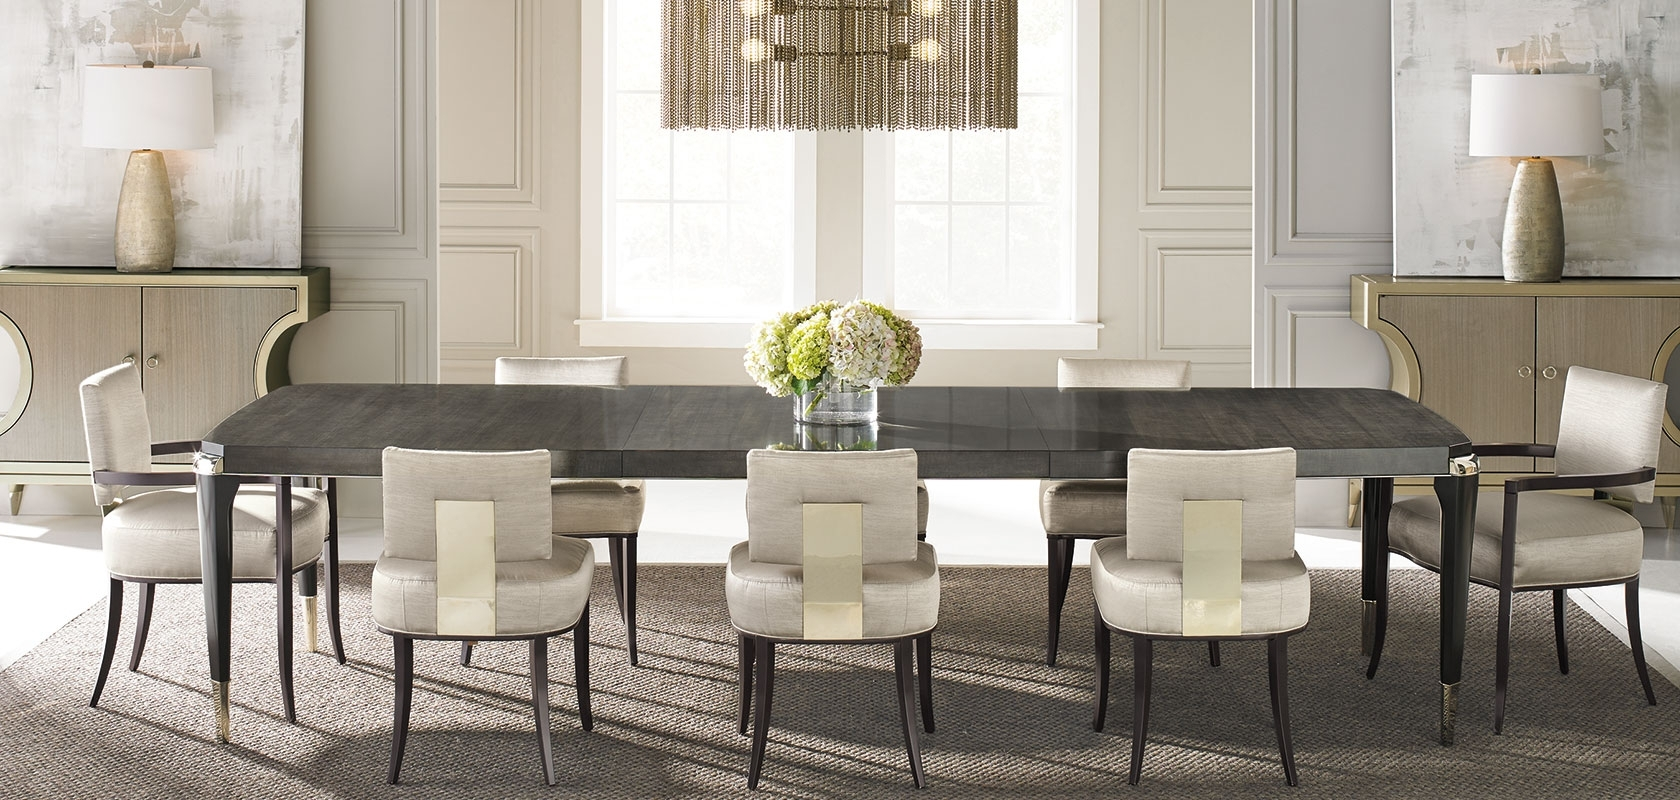 2018 Dining Tables – Safavieh Home Dining Room Furniture In Dining Tables (Gallery 20 of 25)